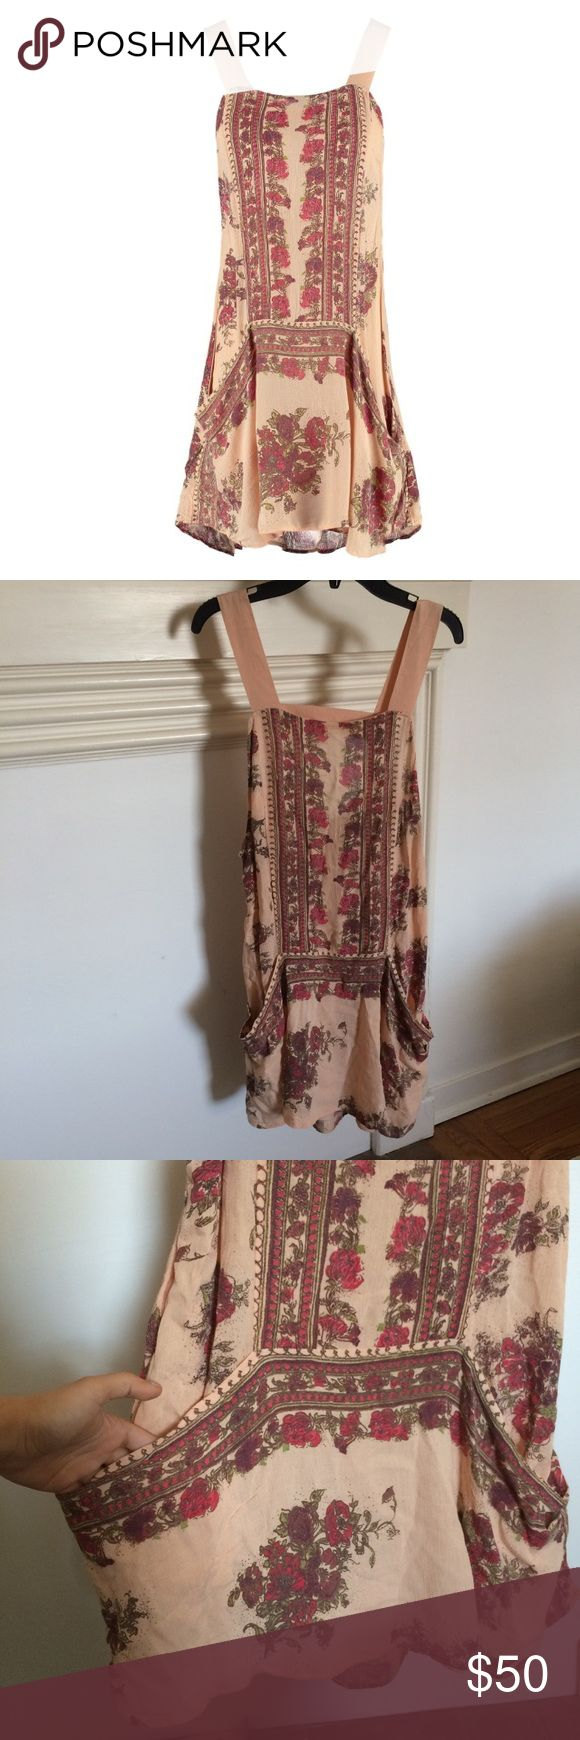 """NWT free people """"paradise song"""" dress Beautiful free people antique combo day dress. Has two pockets and an open back with thick straps. Perfect for spring or summer! Retails for $98. Size small Free People Dresses Mini"""